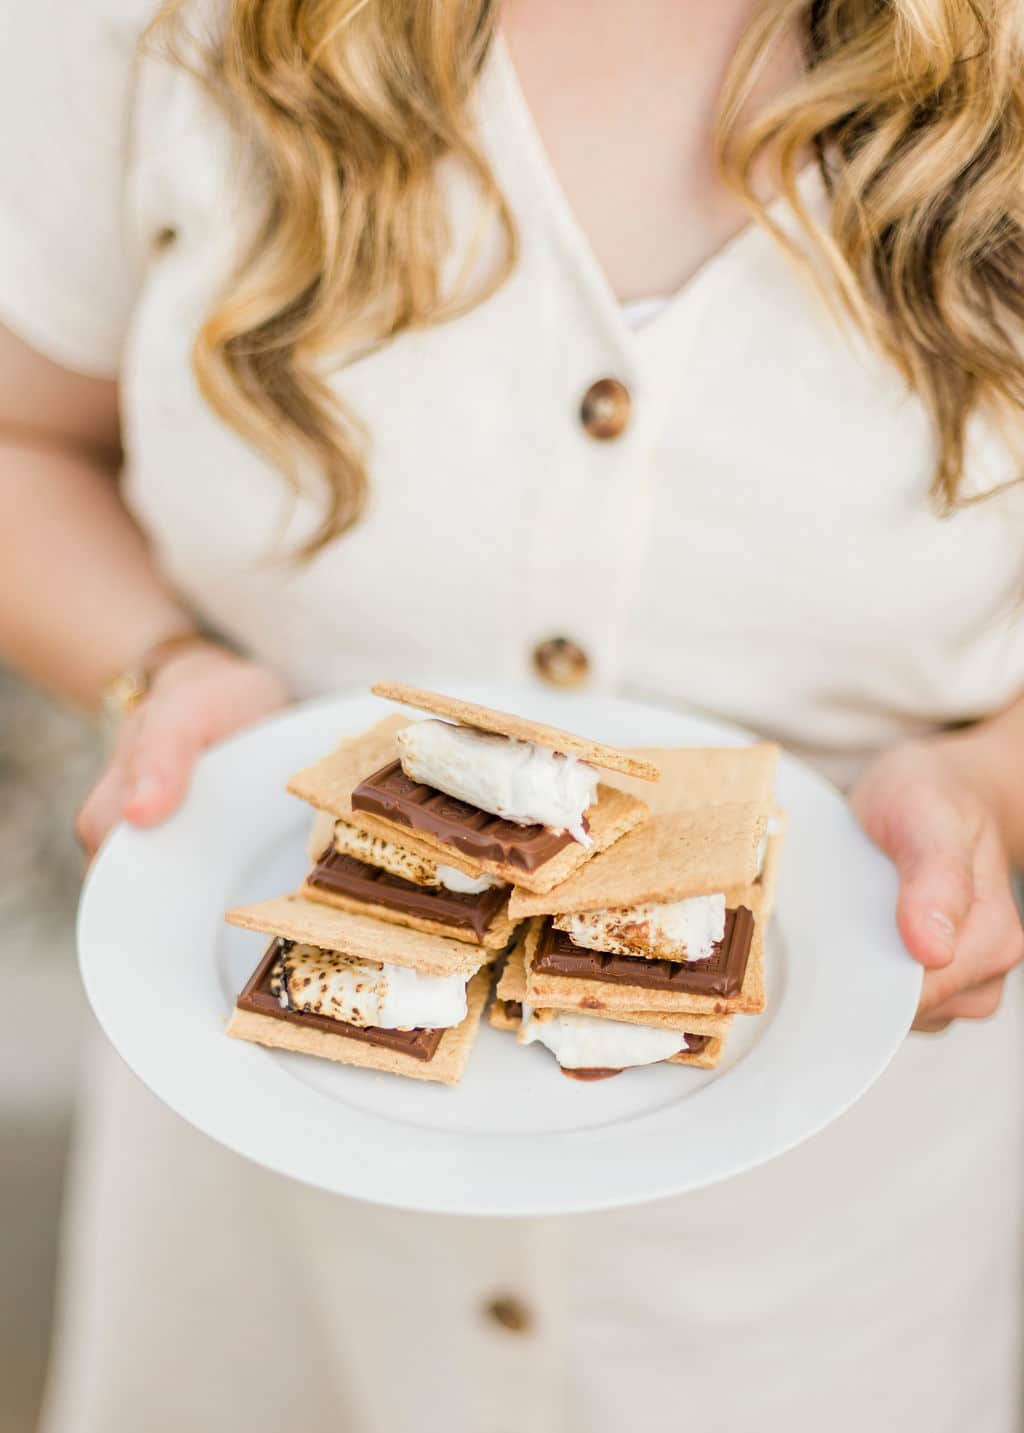 S'More Party IDeas